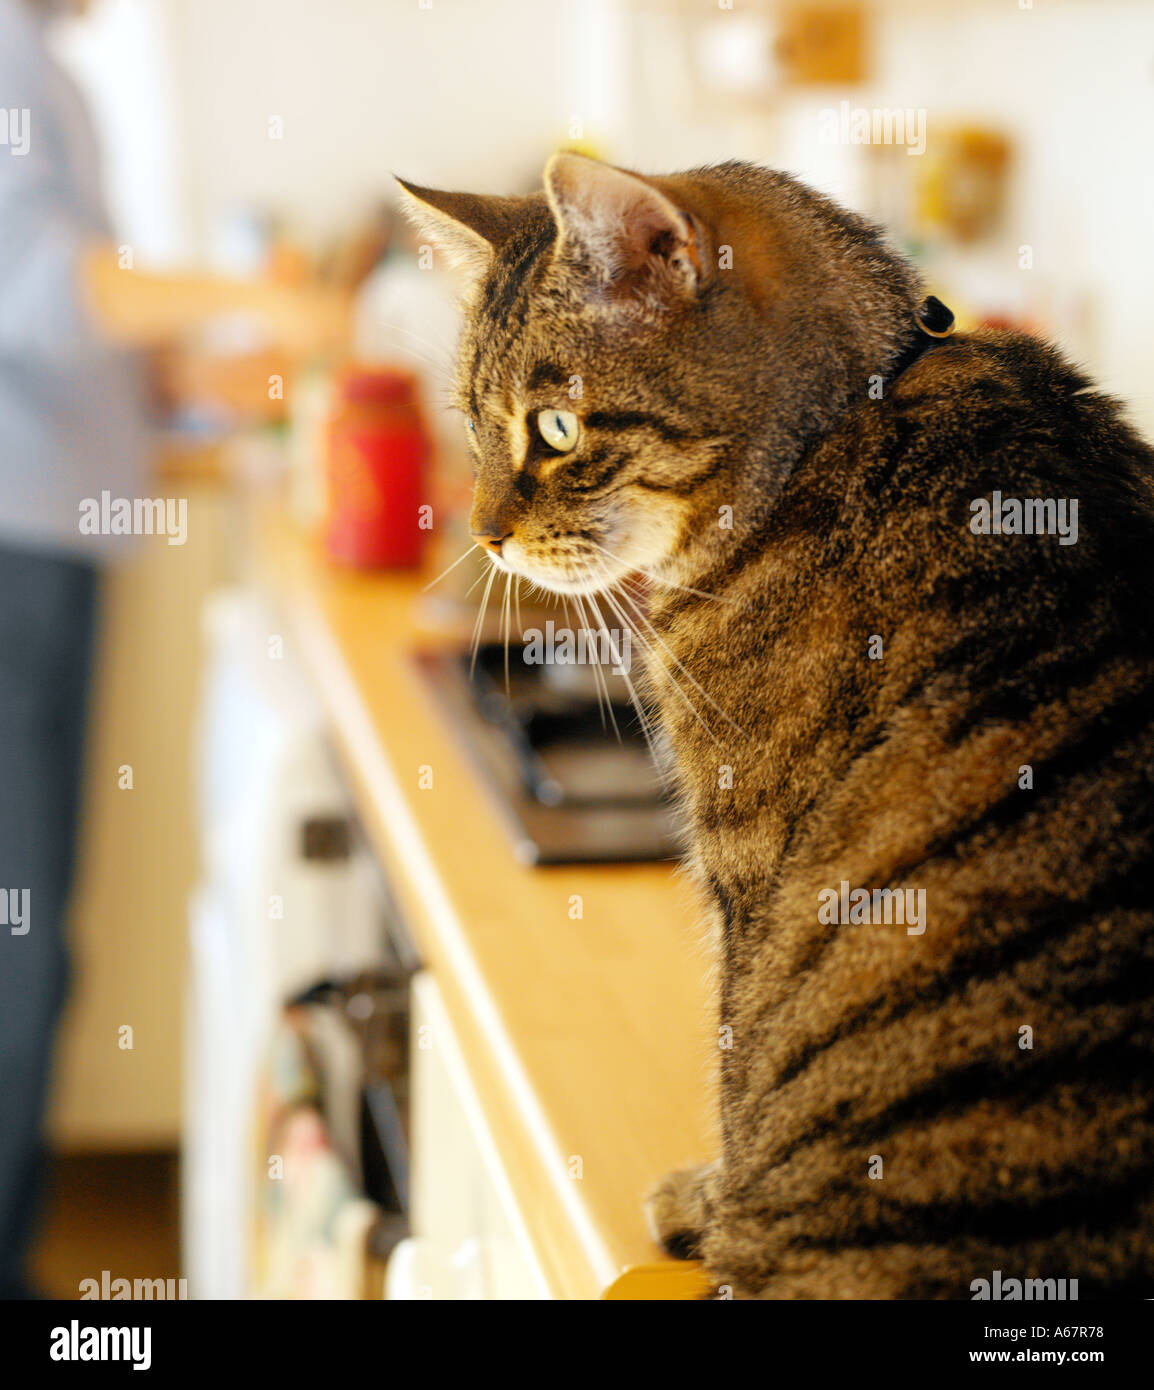 Tabby Cat sat on kitchen side waiting for food - Stock Image